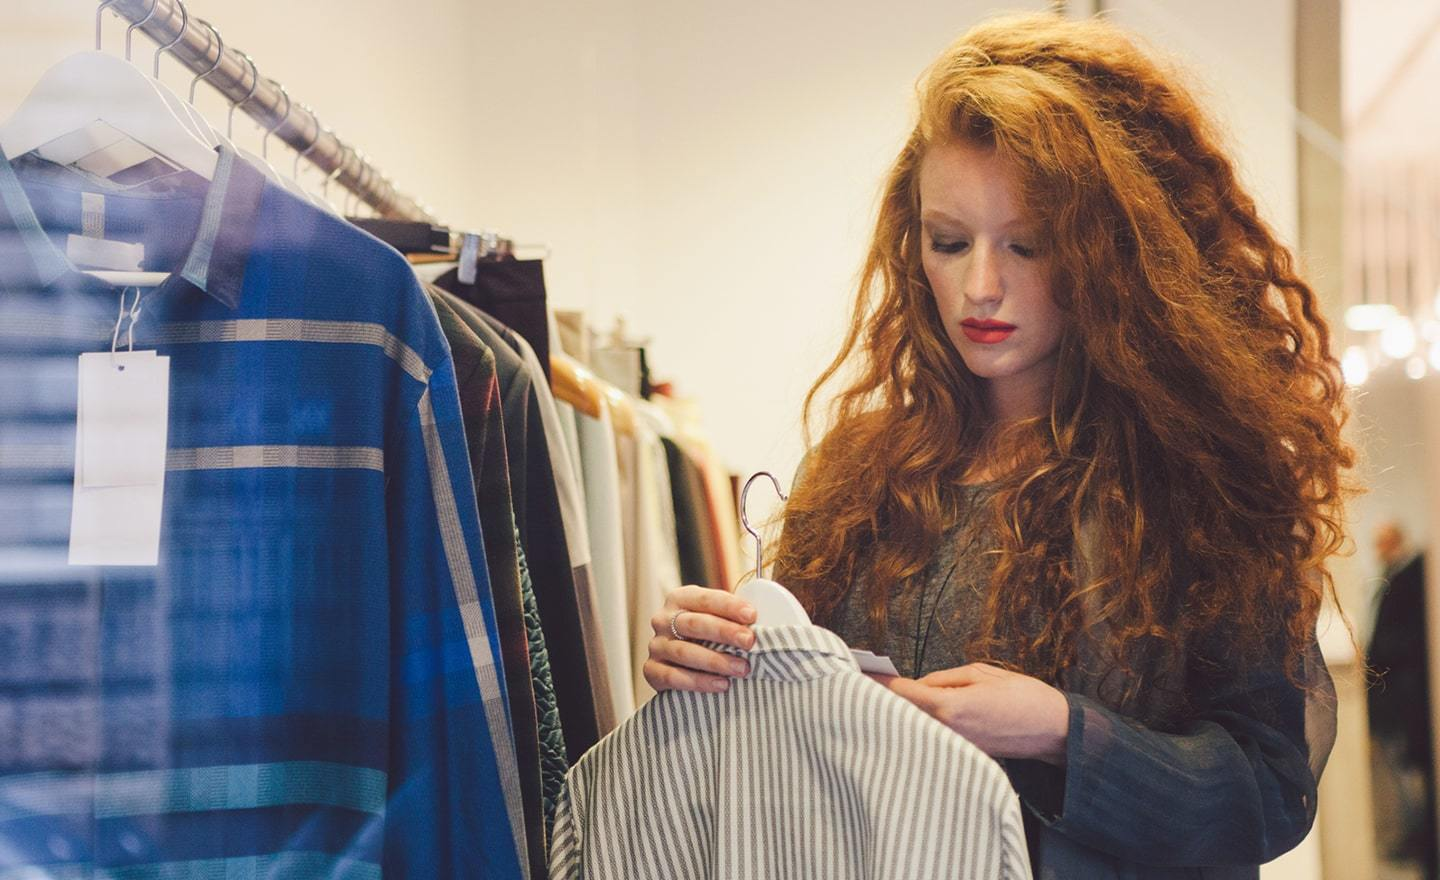 Wardrobe stylist looking at sweater